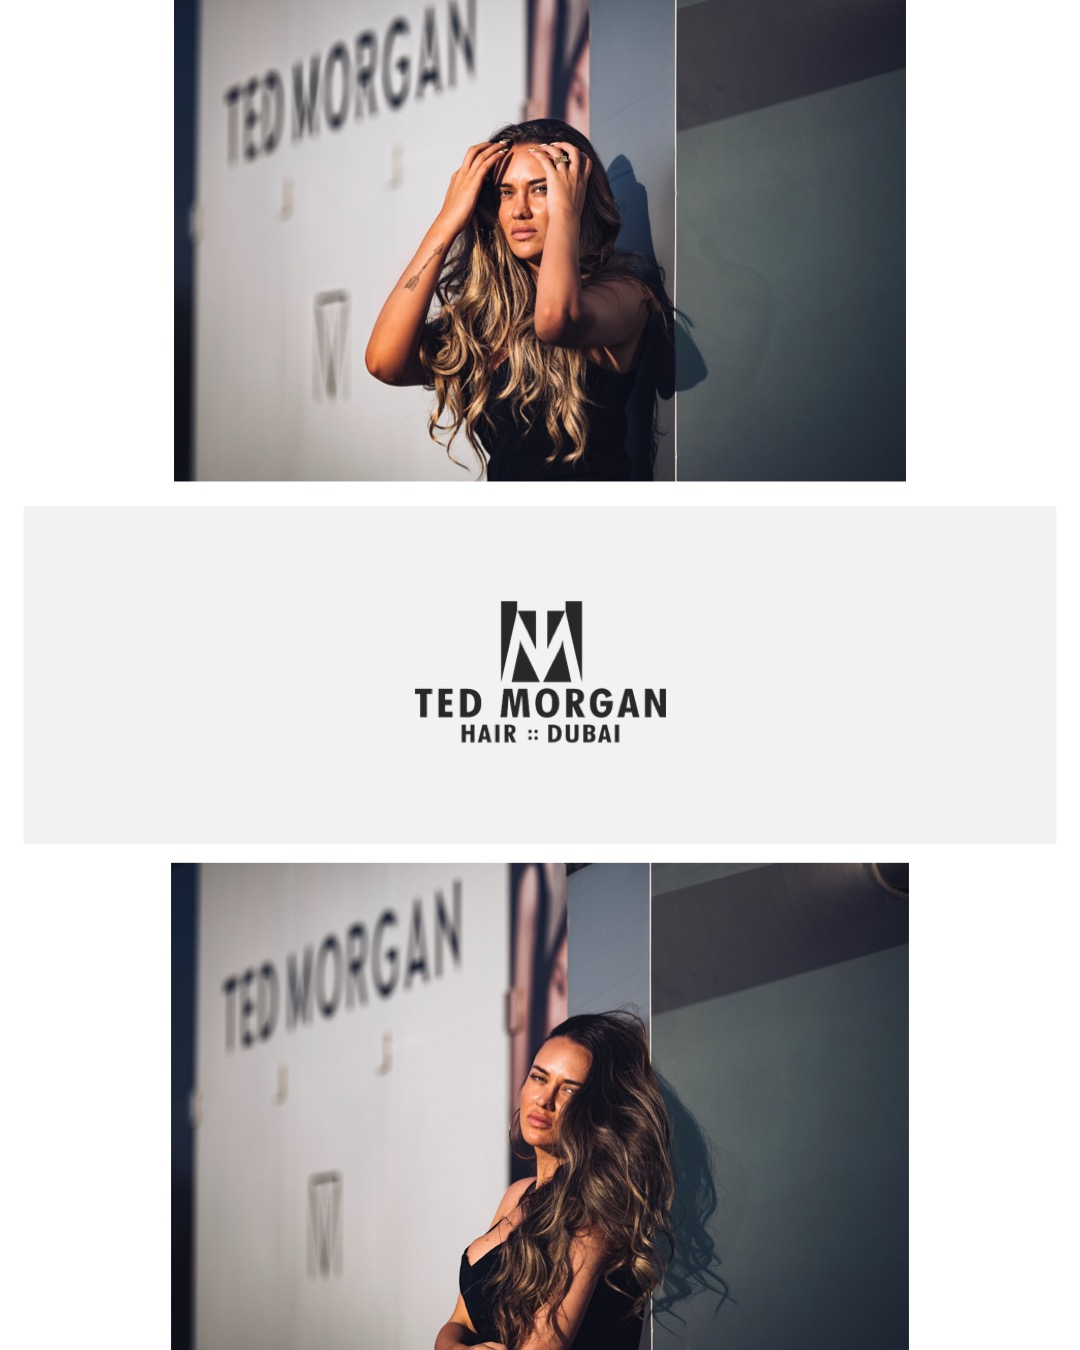 Ted Morgan Hair Salon Dubai | Joanna Colomas joannacolomas.com